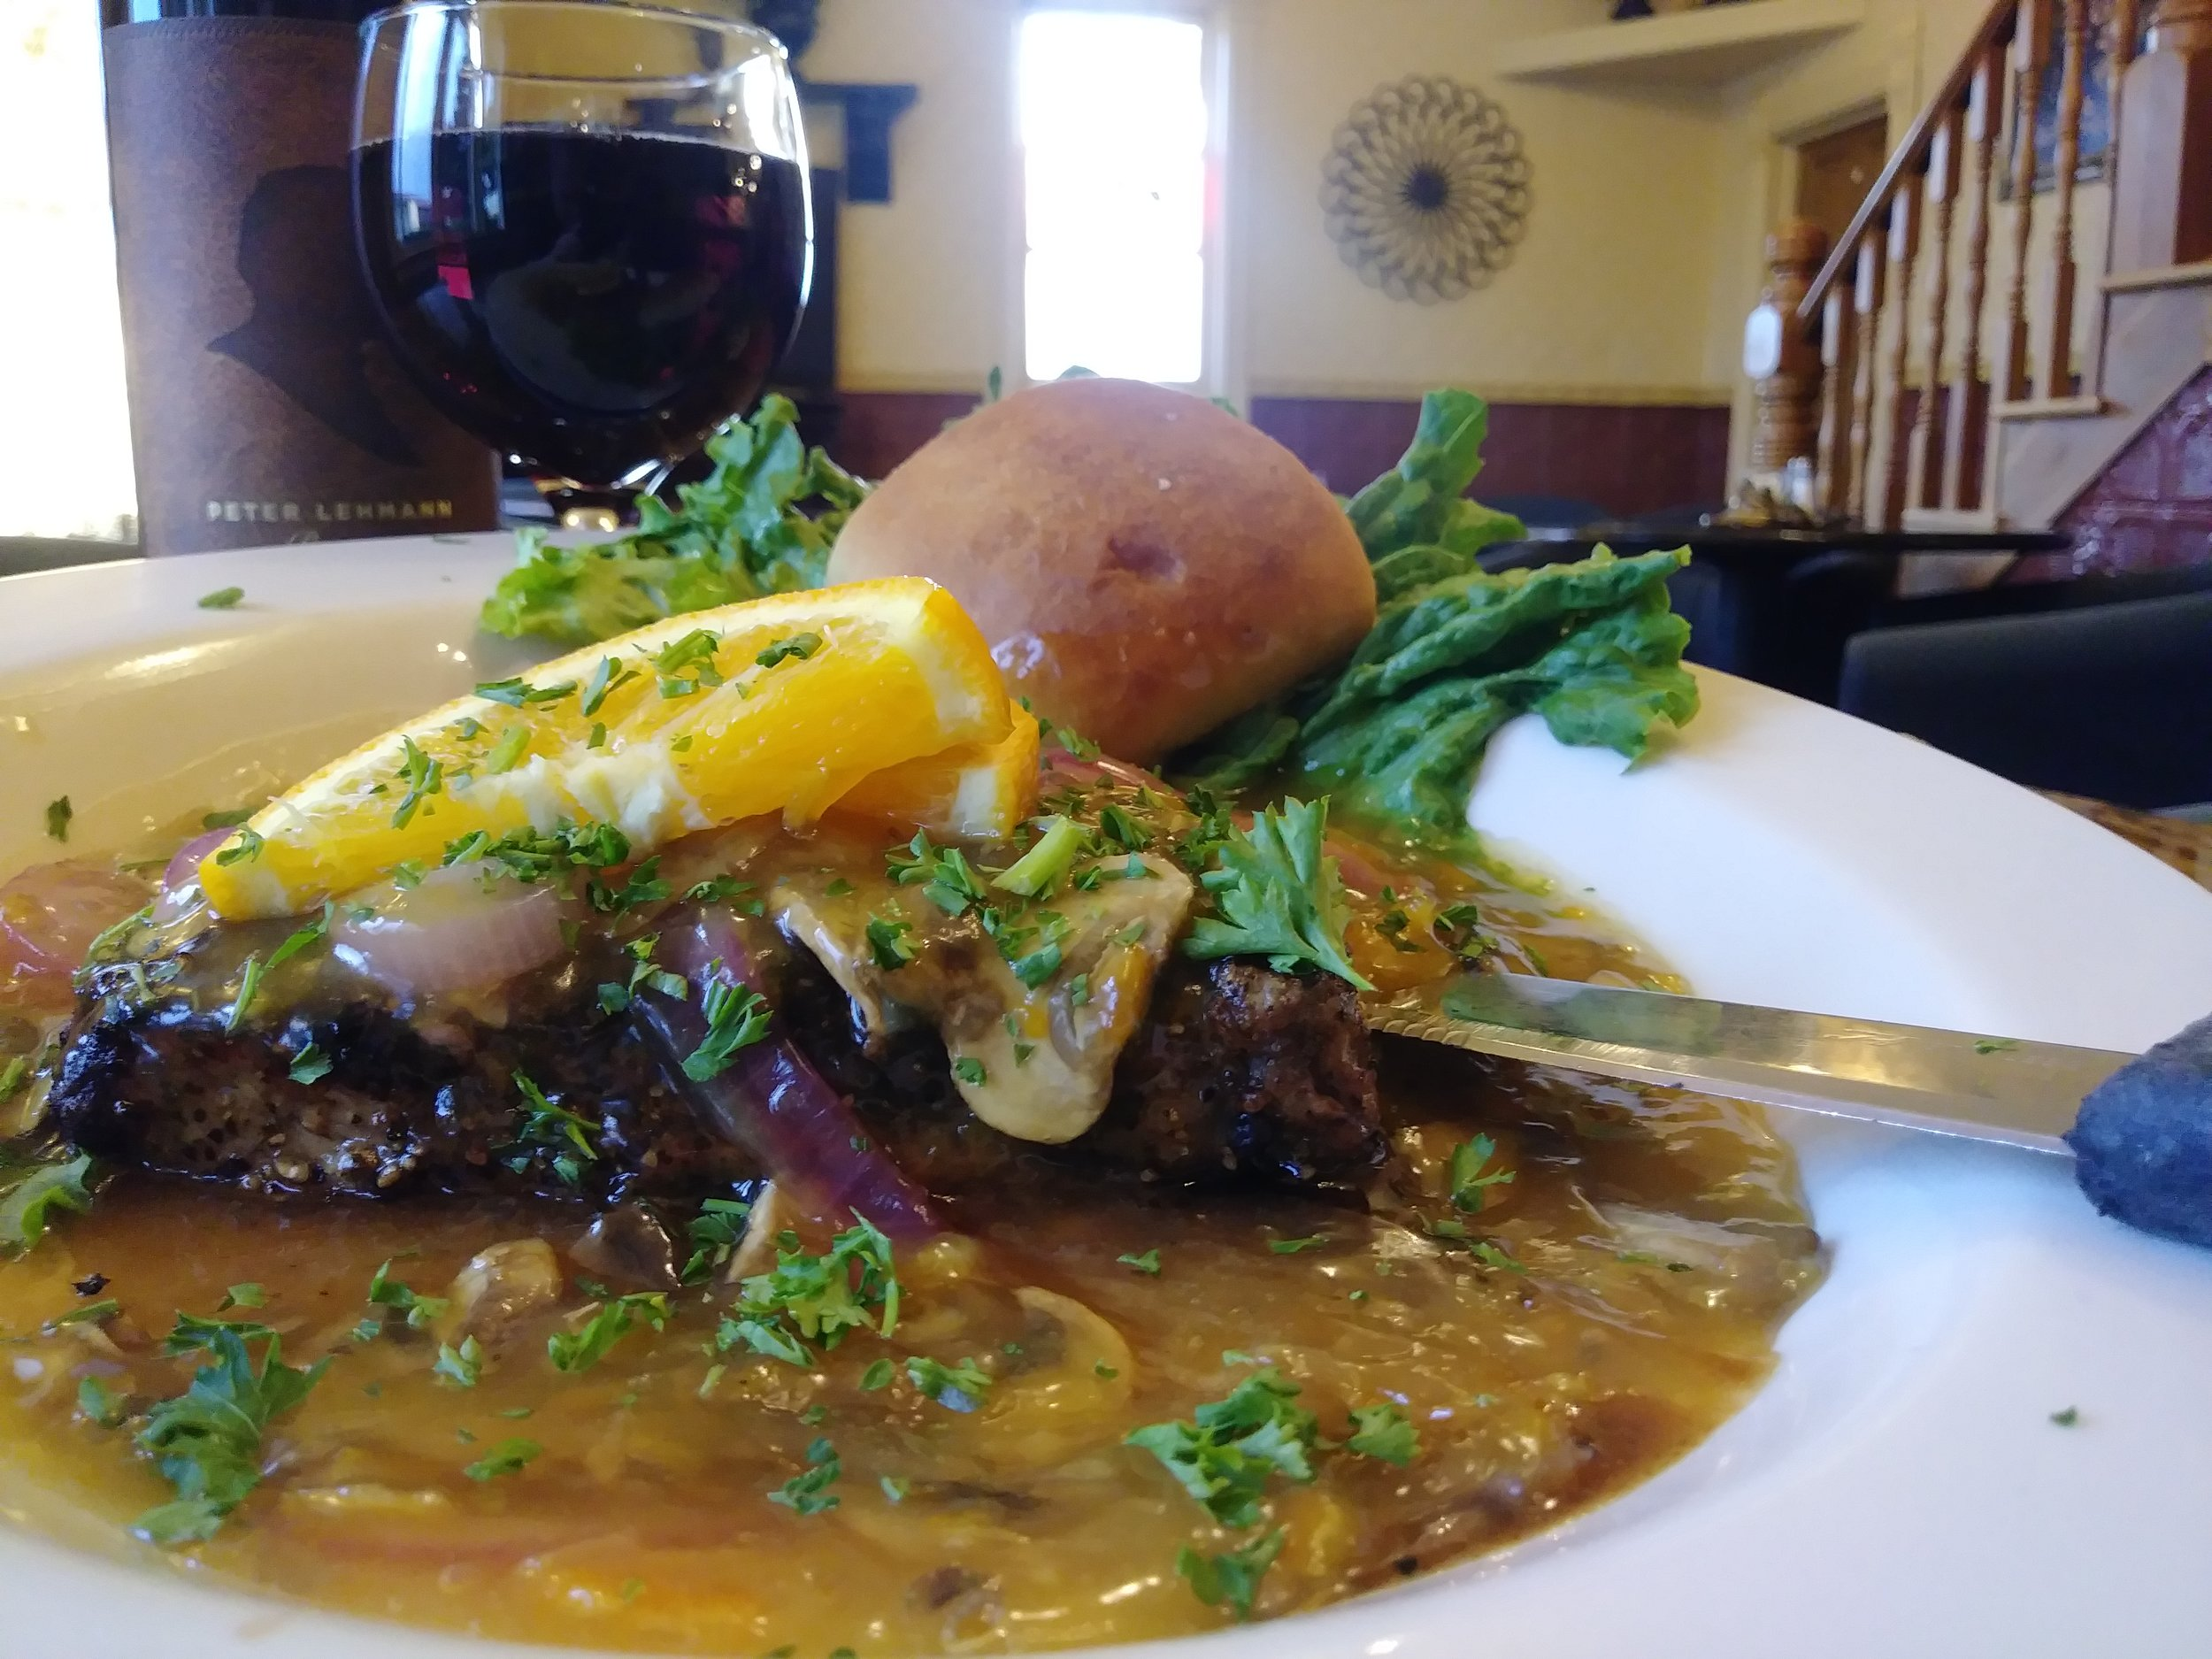 Peppercorn steak - Choice 8 ounce top sirloin, smothered in peppercorns, topped with red onions & mushrooms, then finished off with an orange marmalade sauce. A perfect combination of flavors for the spicier pallet $15.99